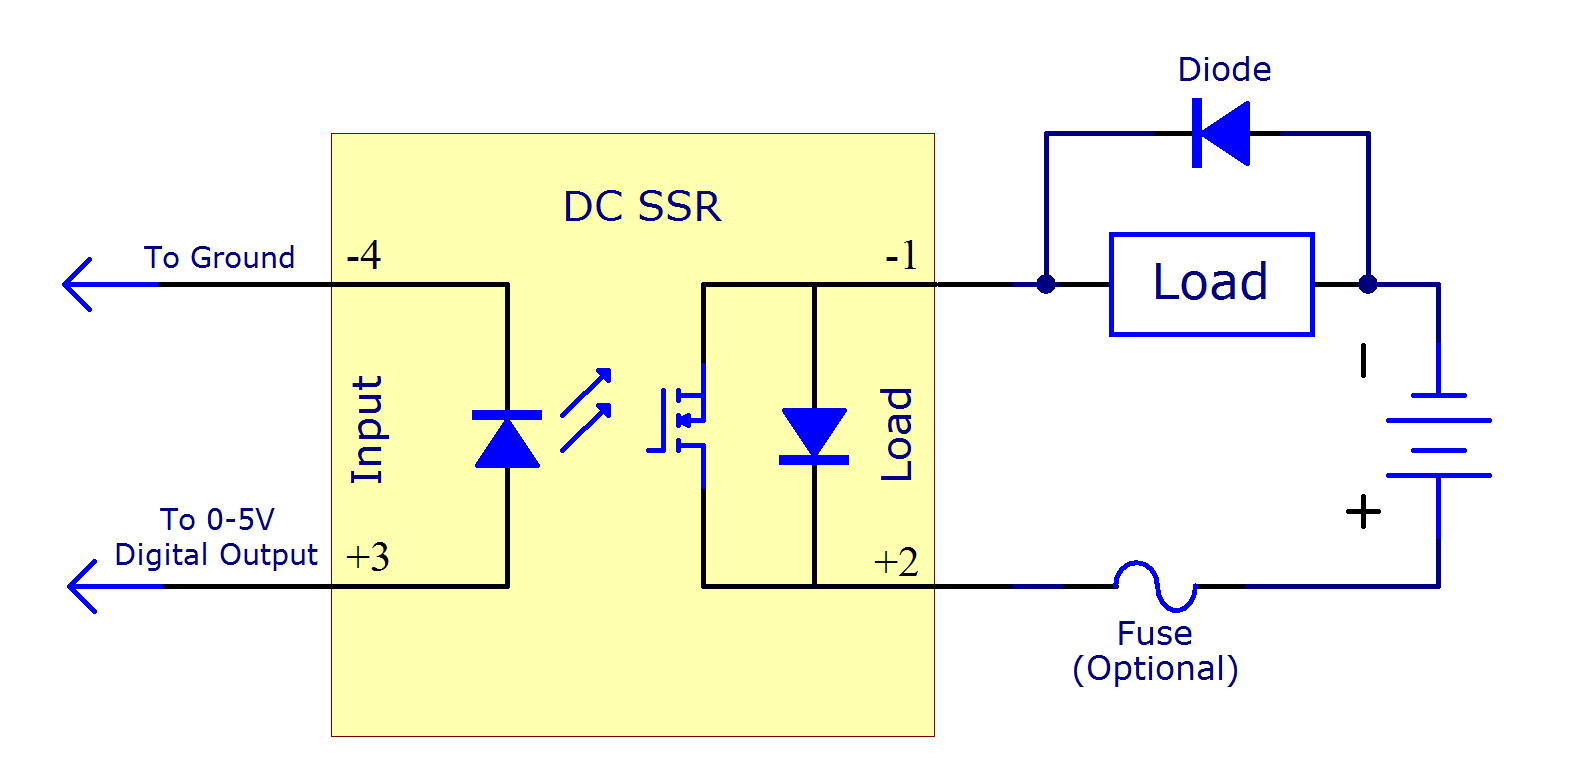 Solid State Relay Primer Phidgets Support Power Of Light With A Wall Schematic To Electrical Wiring Full Size Image